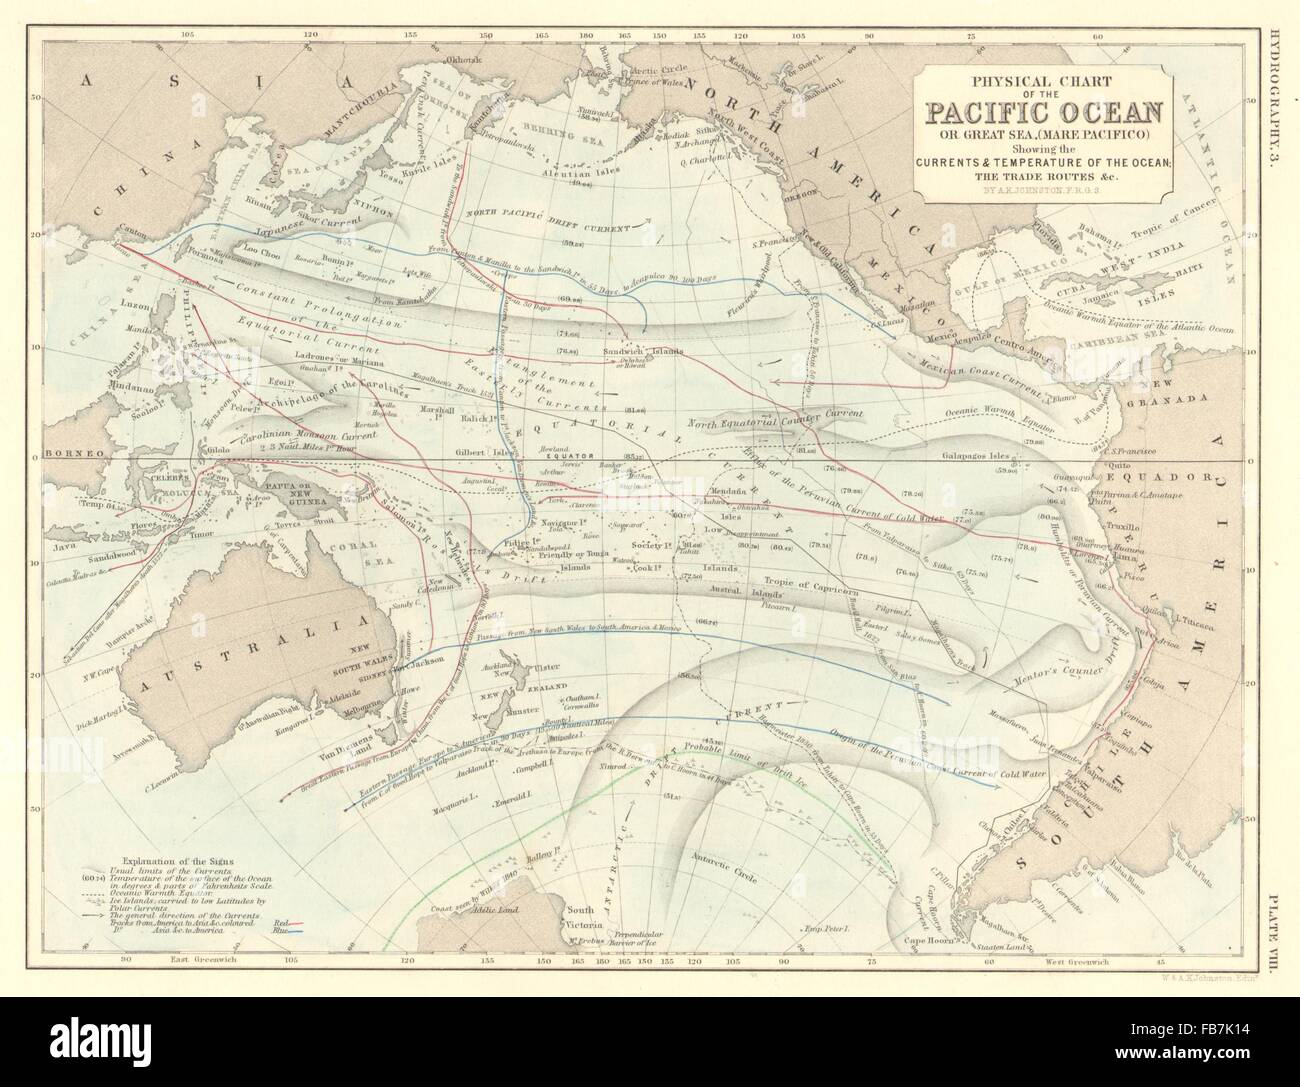 PACIFIC OCEAN: Physical chart. Currents, temperature & trade ...